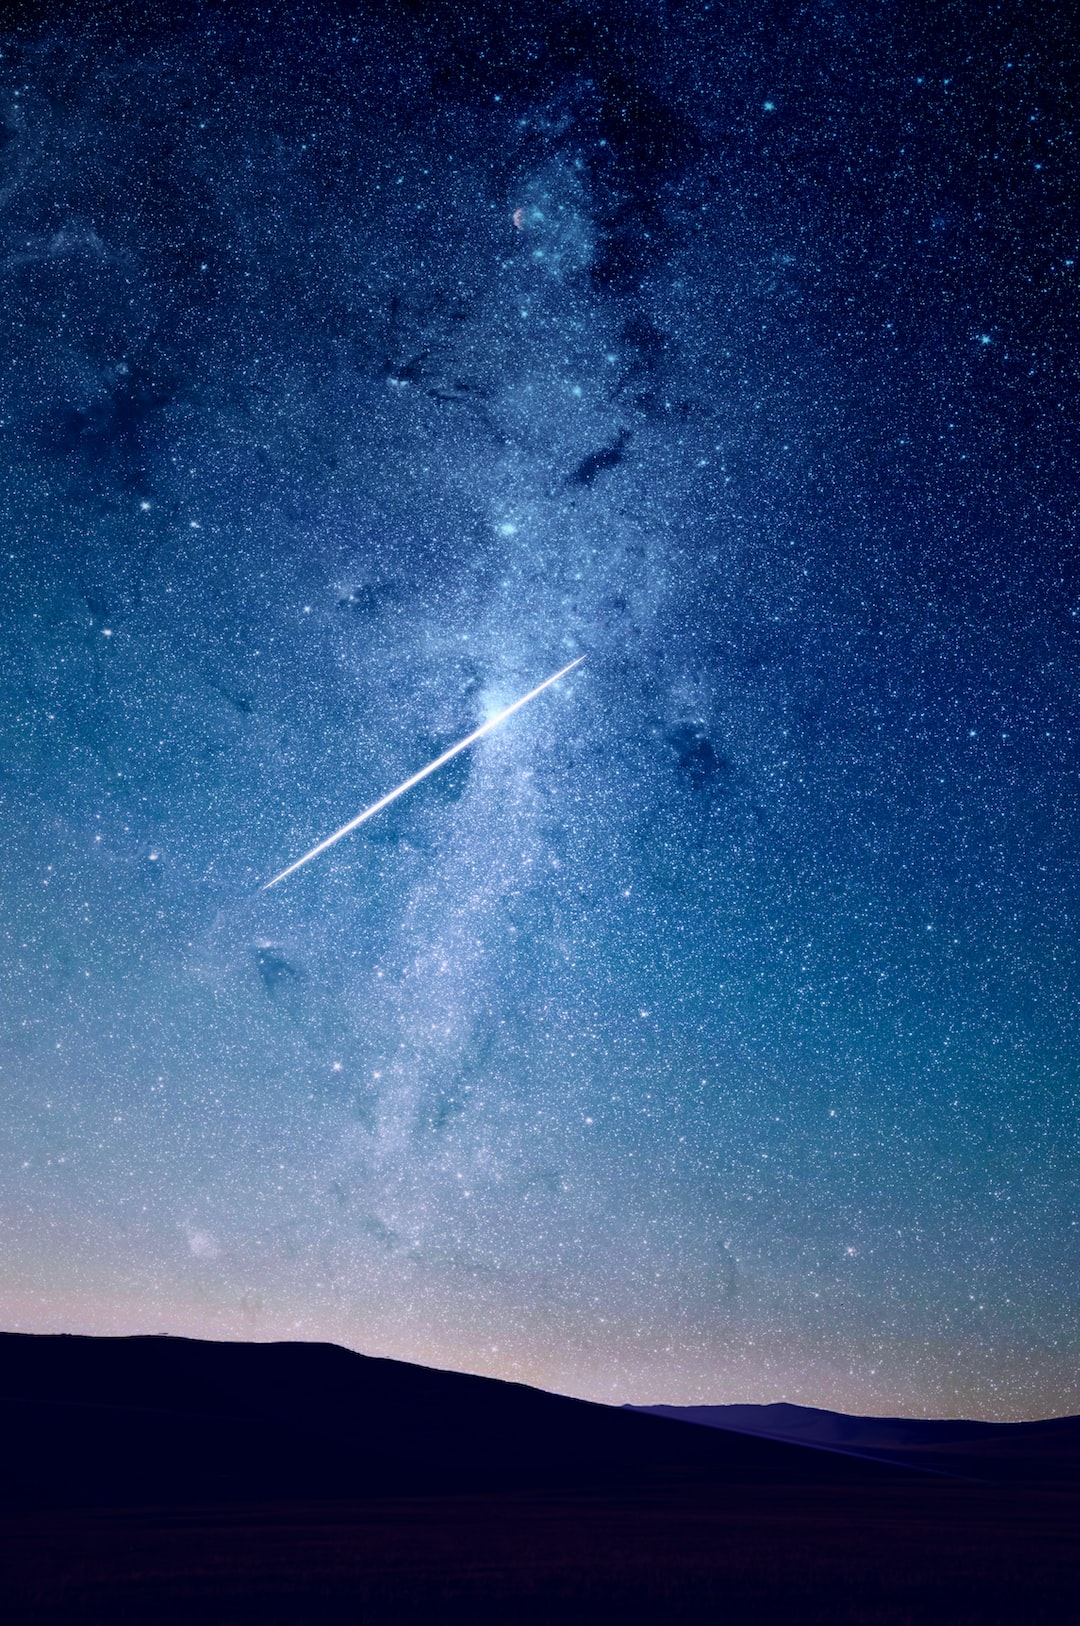 shooting star under blue u003cbu003eskyu003c/bu003e photo u2013 Free Space Image on Unsplash